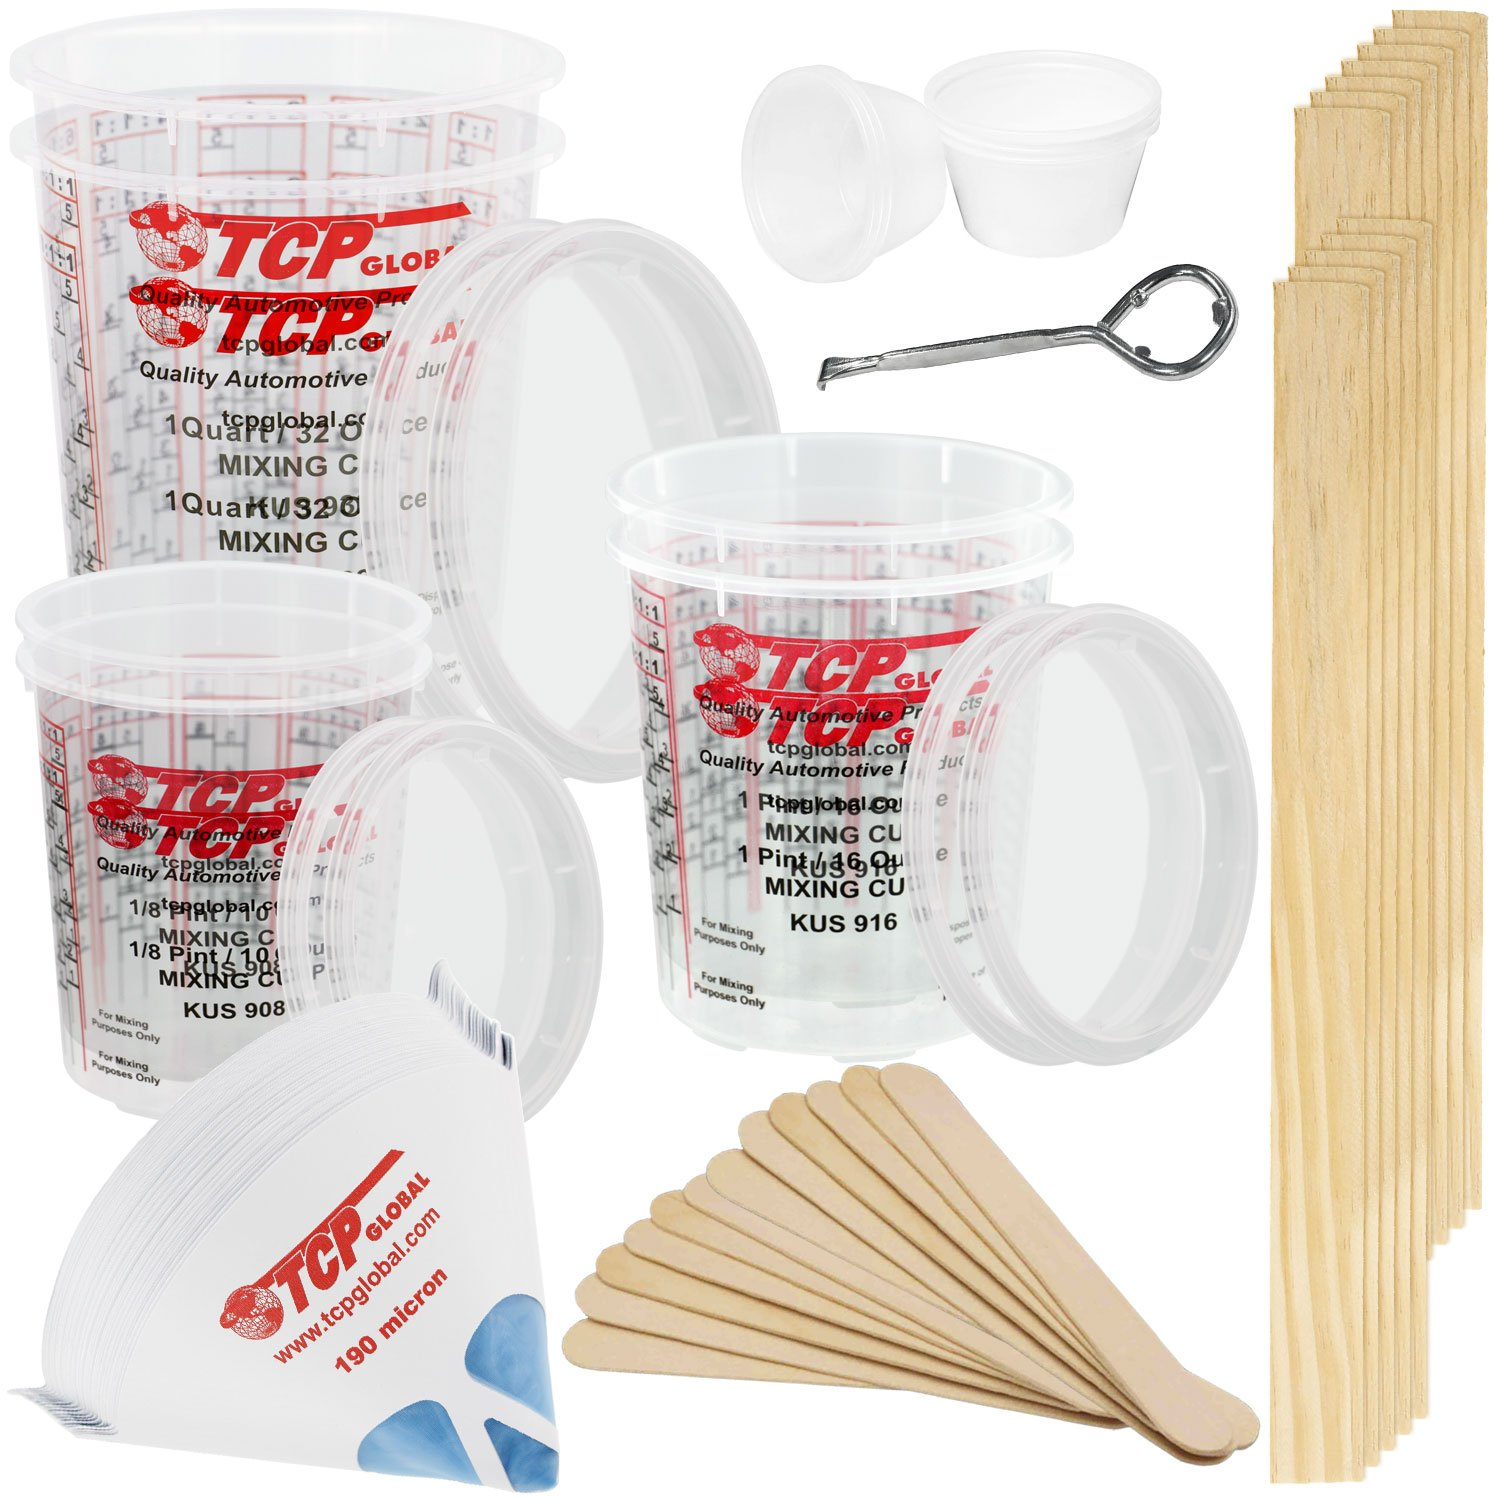 TCP GLOBAL Premium Paint Mixing Essentials Kit. Comes with 12 Mixing Cups, 6 Lids, 12 Wooden 12'' Mixing Sticks, 12 Wooden Mini Mixing Paddles, 12 HQ 190 Mesh Paint Strainers & Paint Can Opener. by Custom Shop